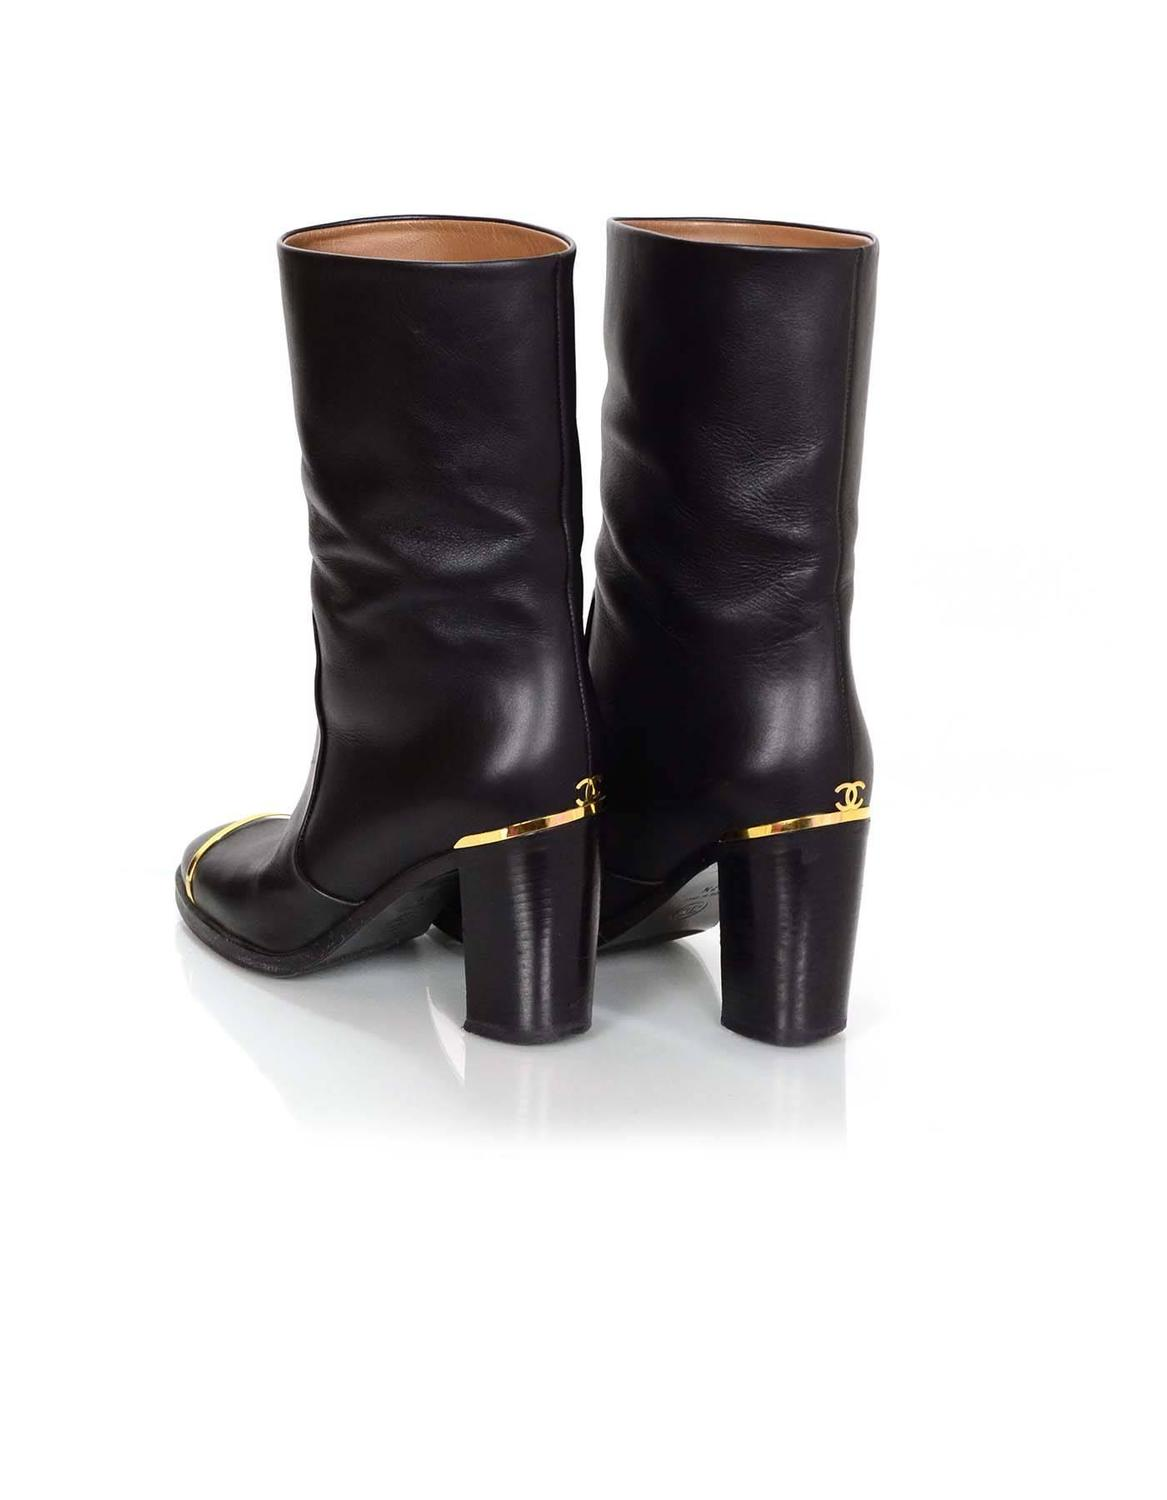 chanel black leather boots sz 37 5 for sale at 1stdibs